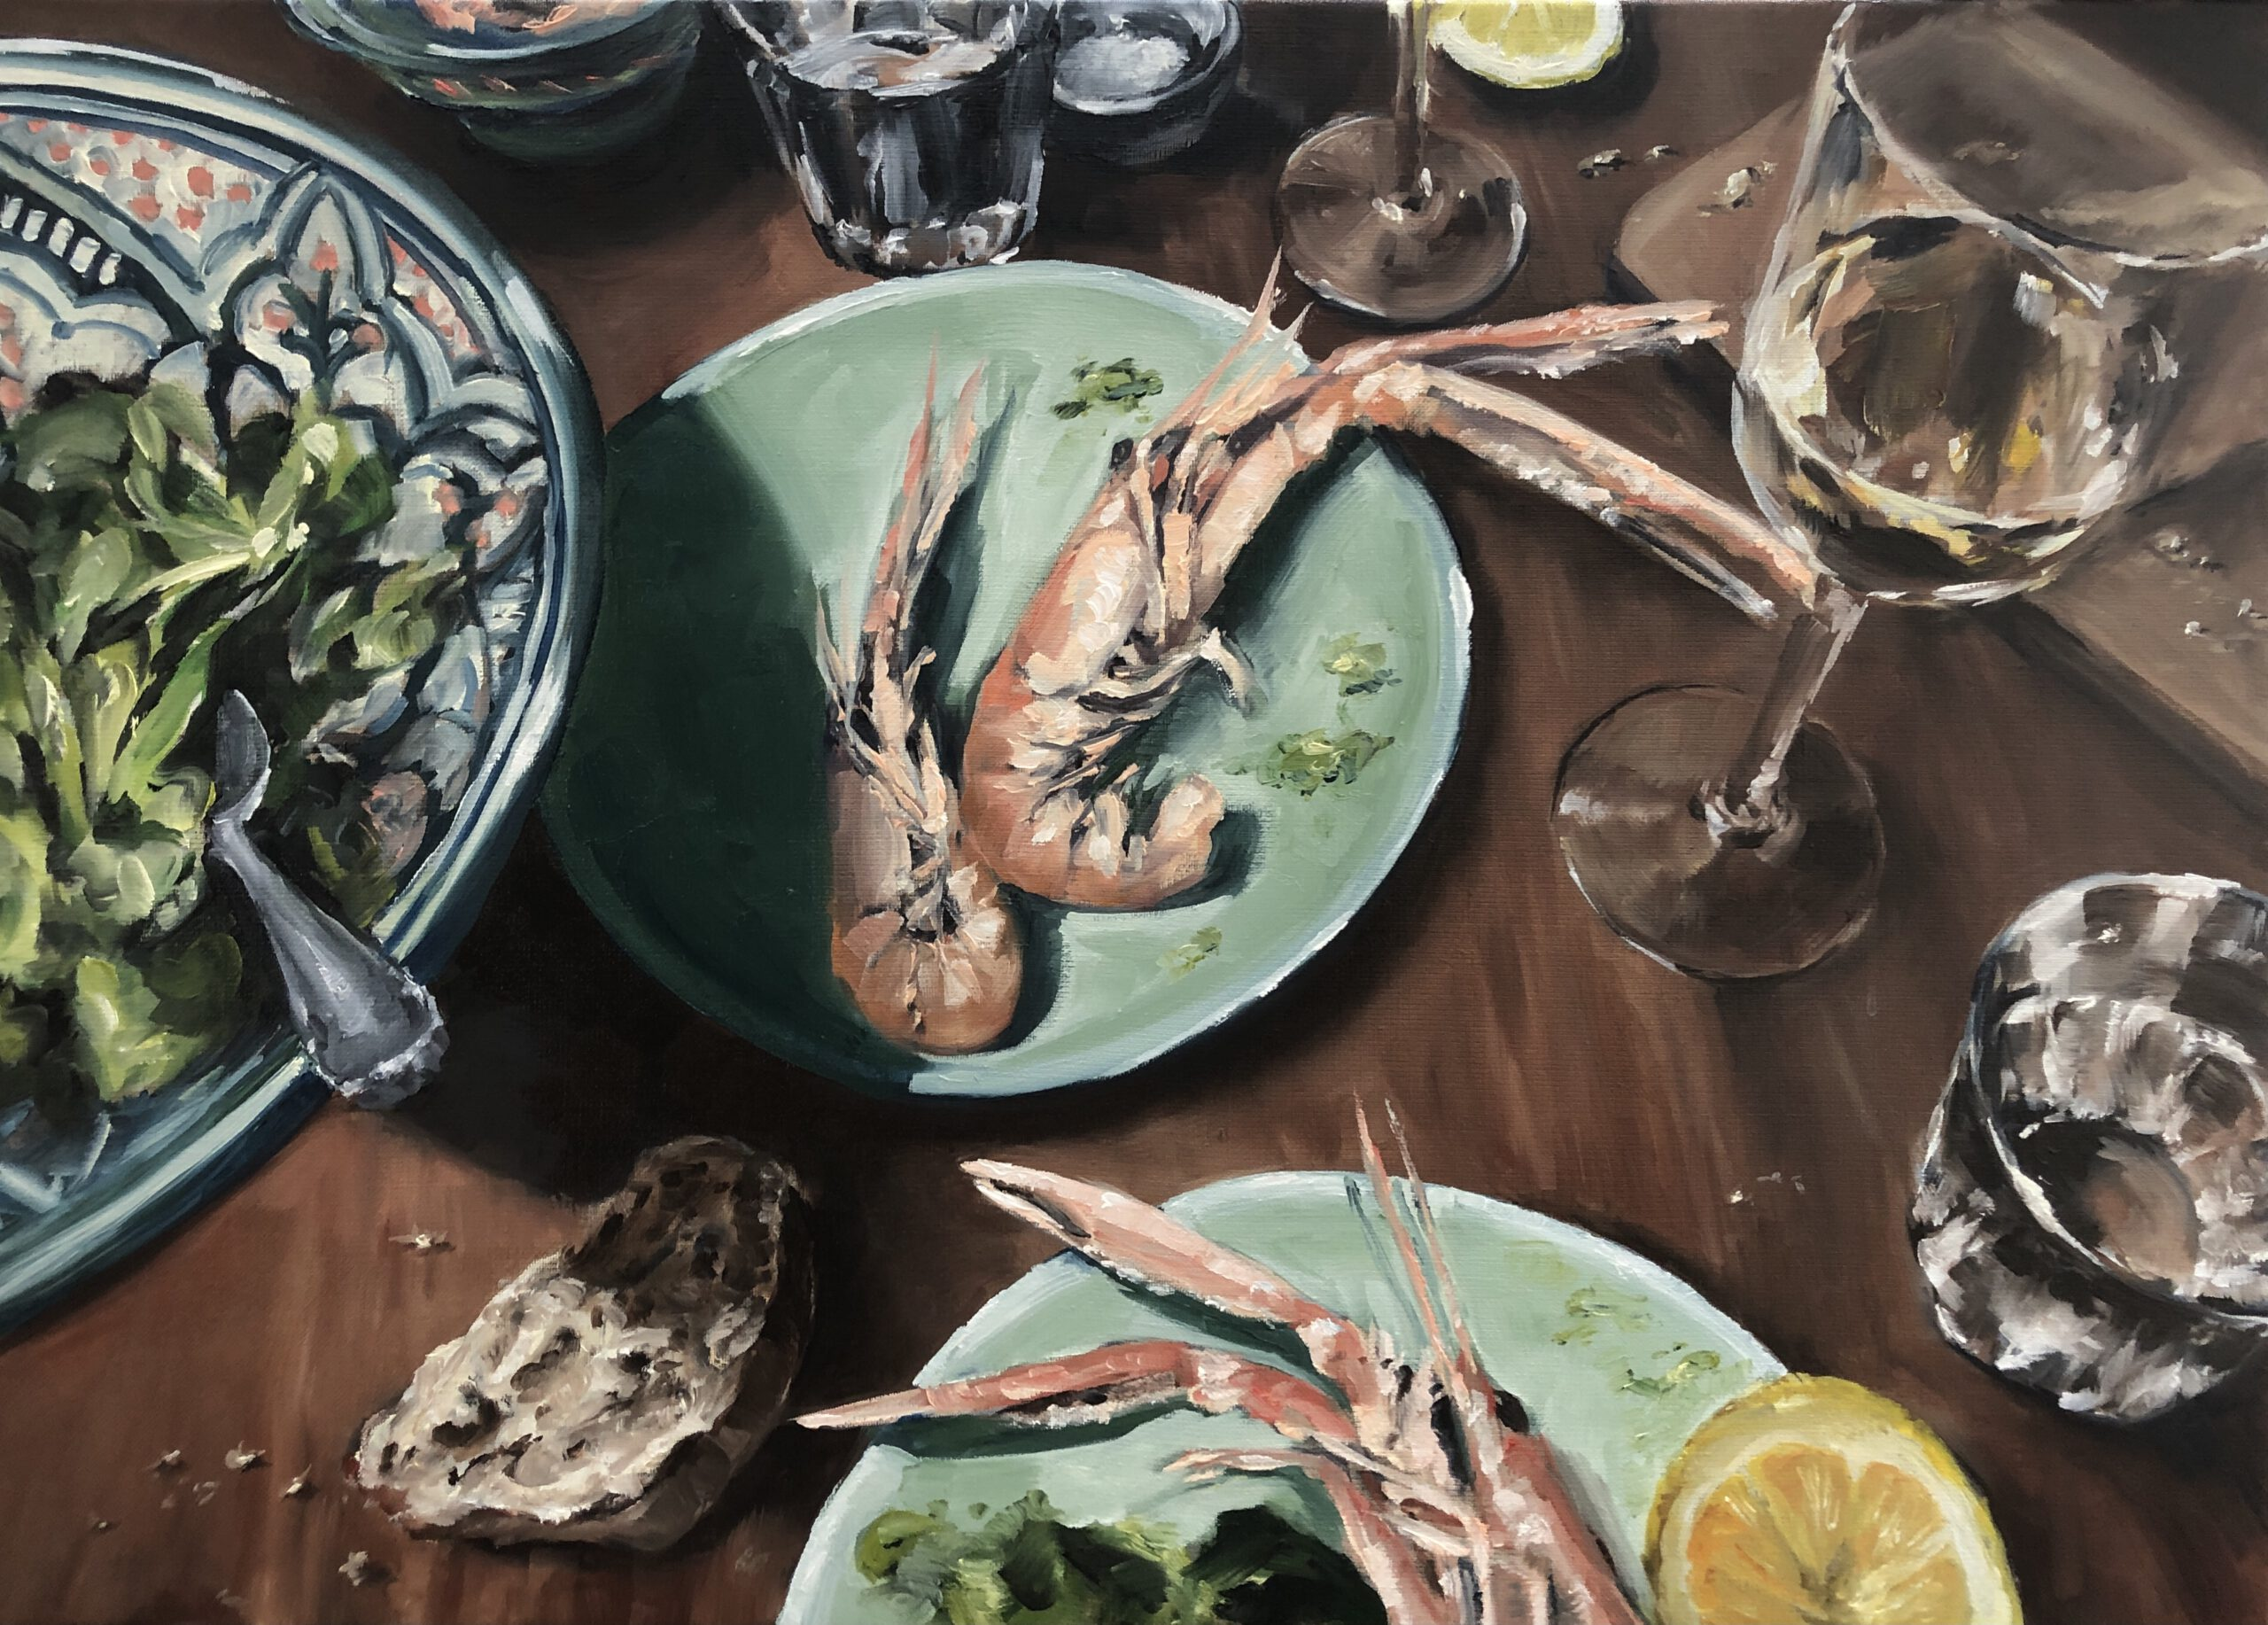 'Dinner for one', Norwegian lobster & wine, 50x70cm, Öl auf Leinwand